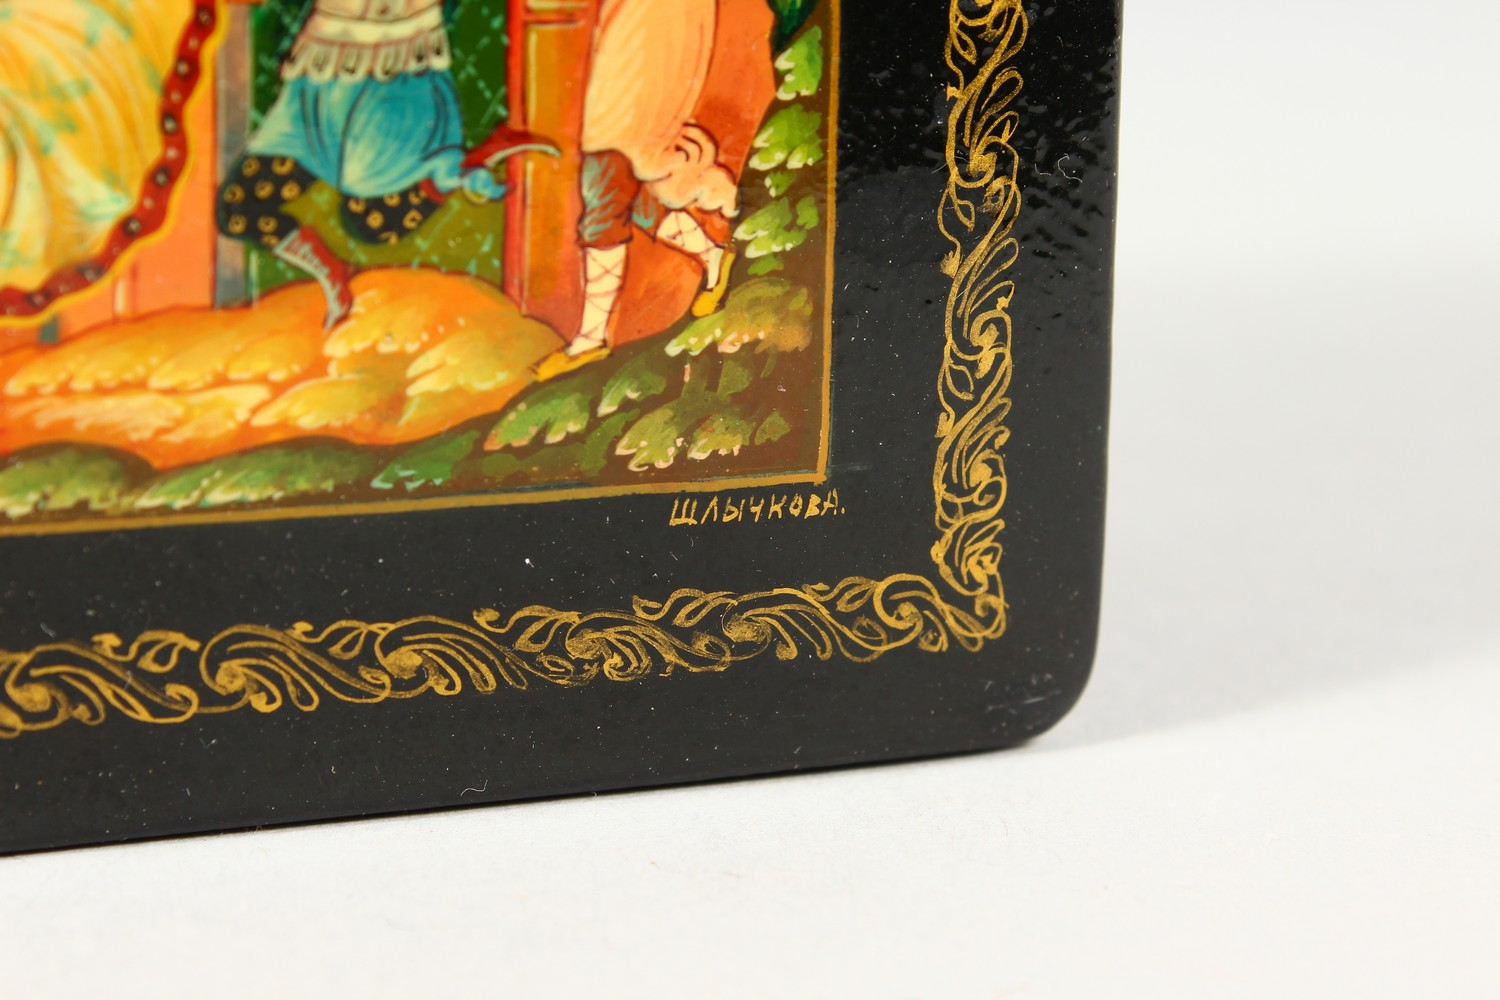 """A RUSSIAN BLACK PAPIER MACHE SQUARE BOX, """"Merrymaking"""". 4ins x 4ins. - Image 7 of 10"""